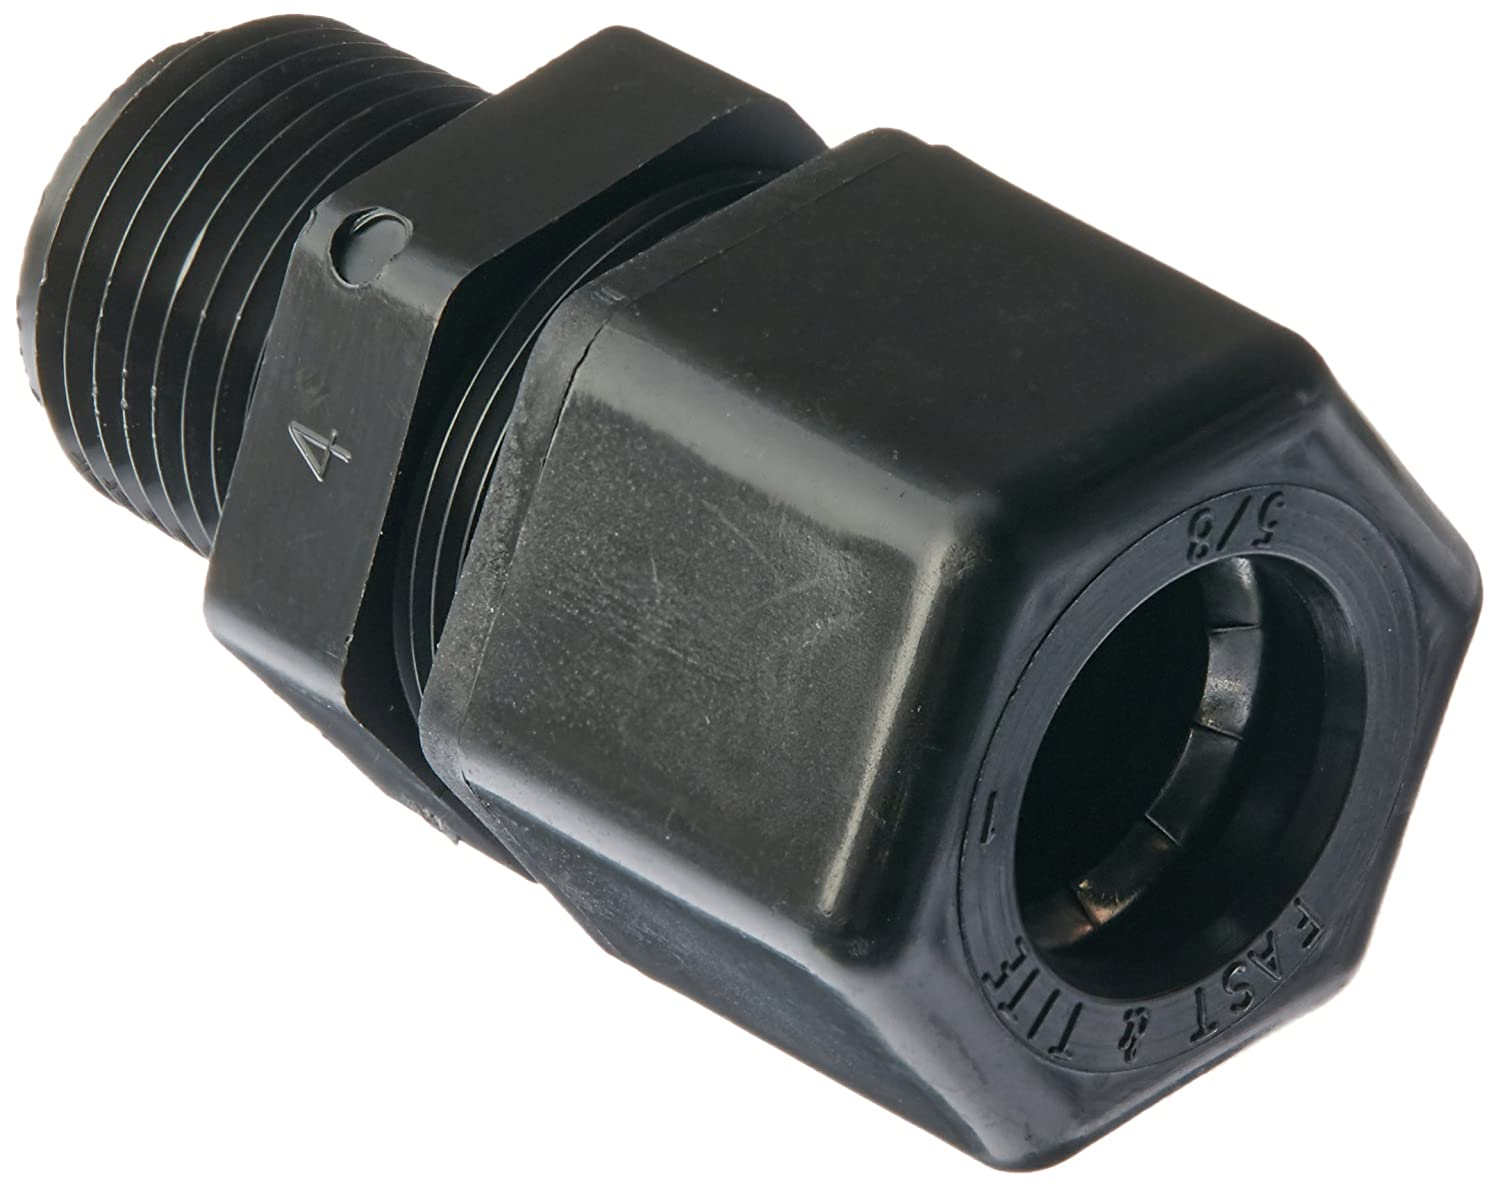 1//2 Compression Tube x 1//2 Male NPTF Pack of 10 Polypropylene Parker Hannifin P8MC8-pk10 Fast /& Tite Male Connector Fitting Black